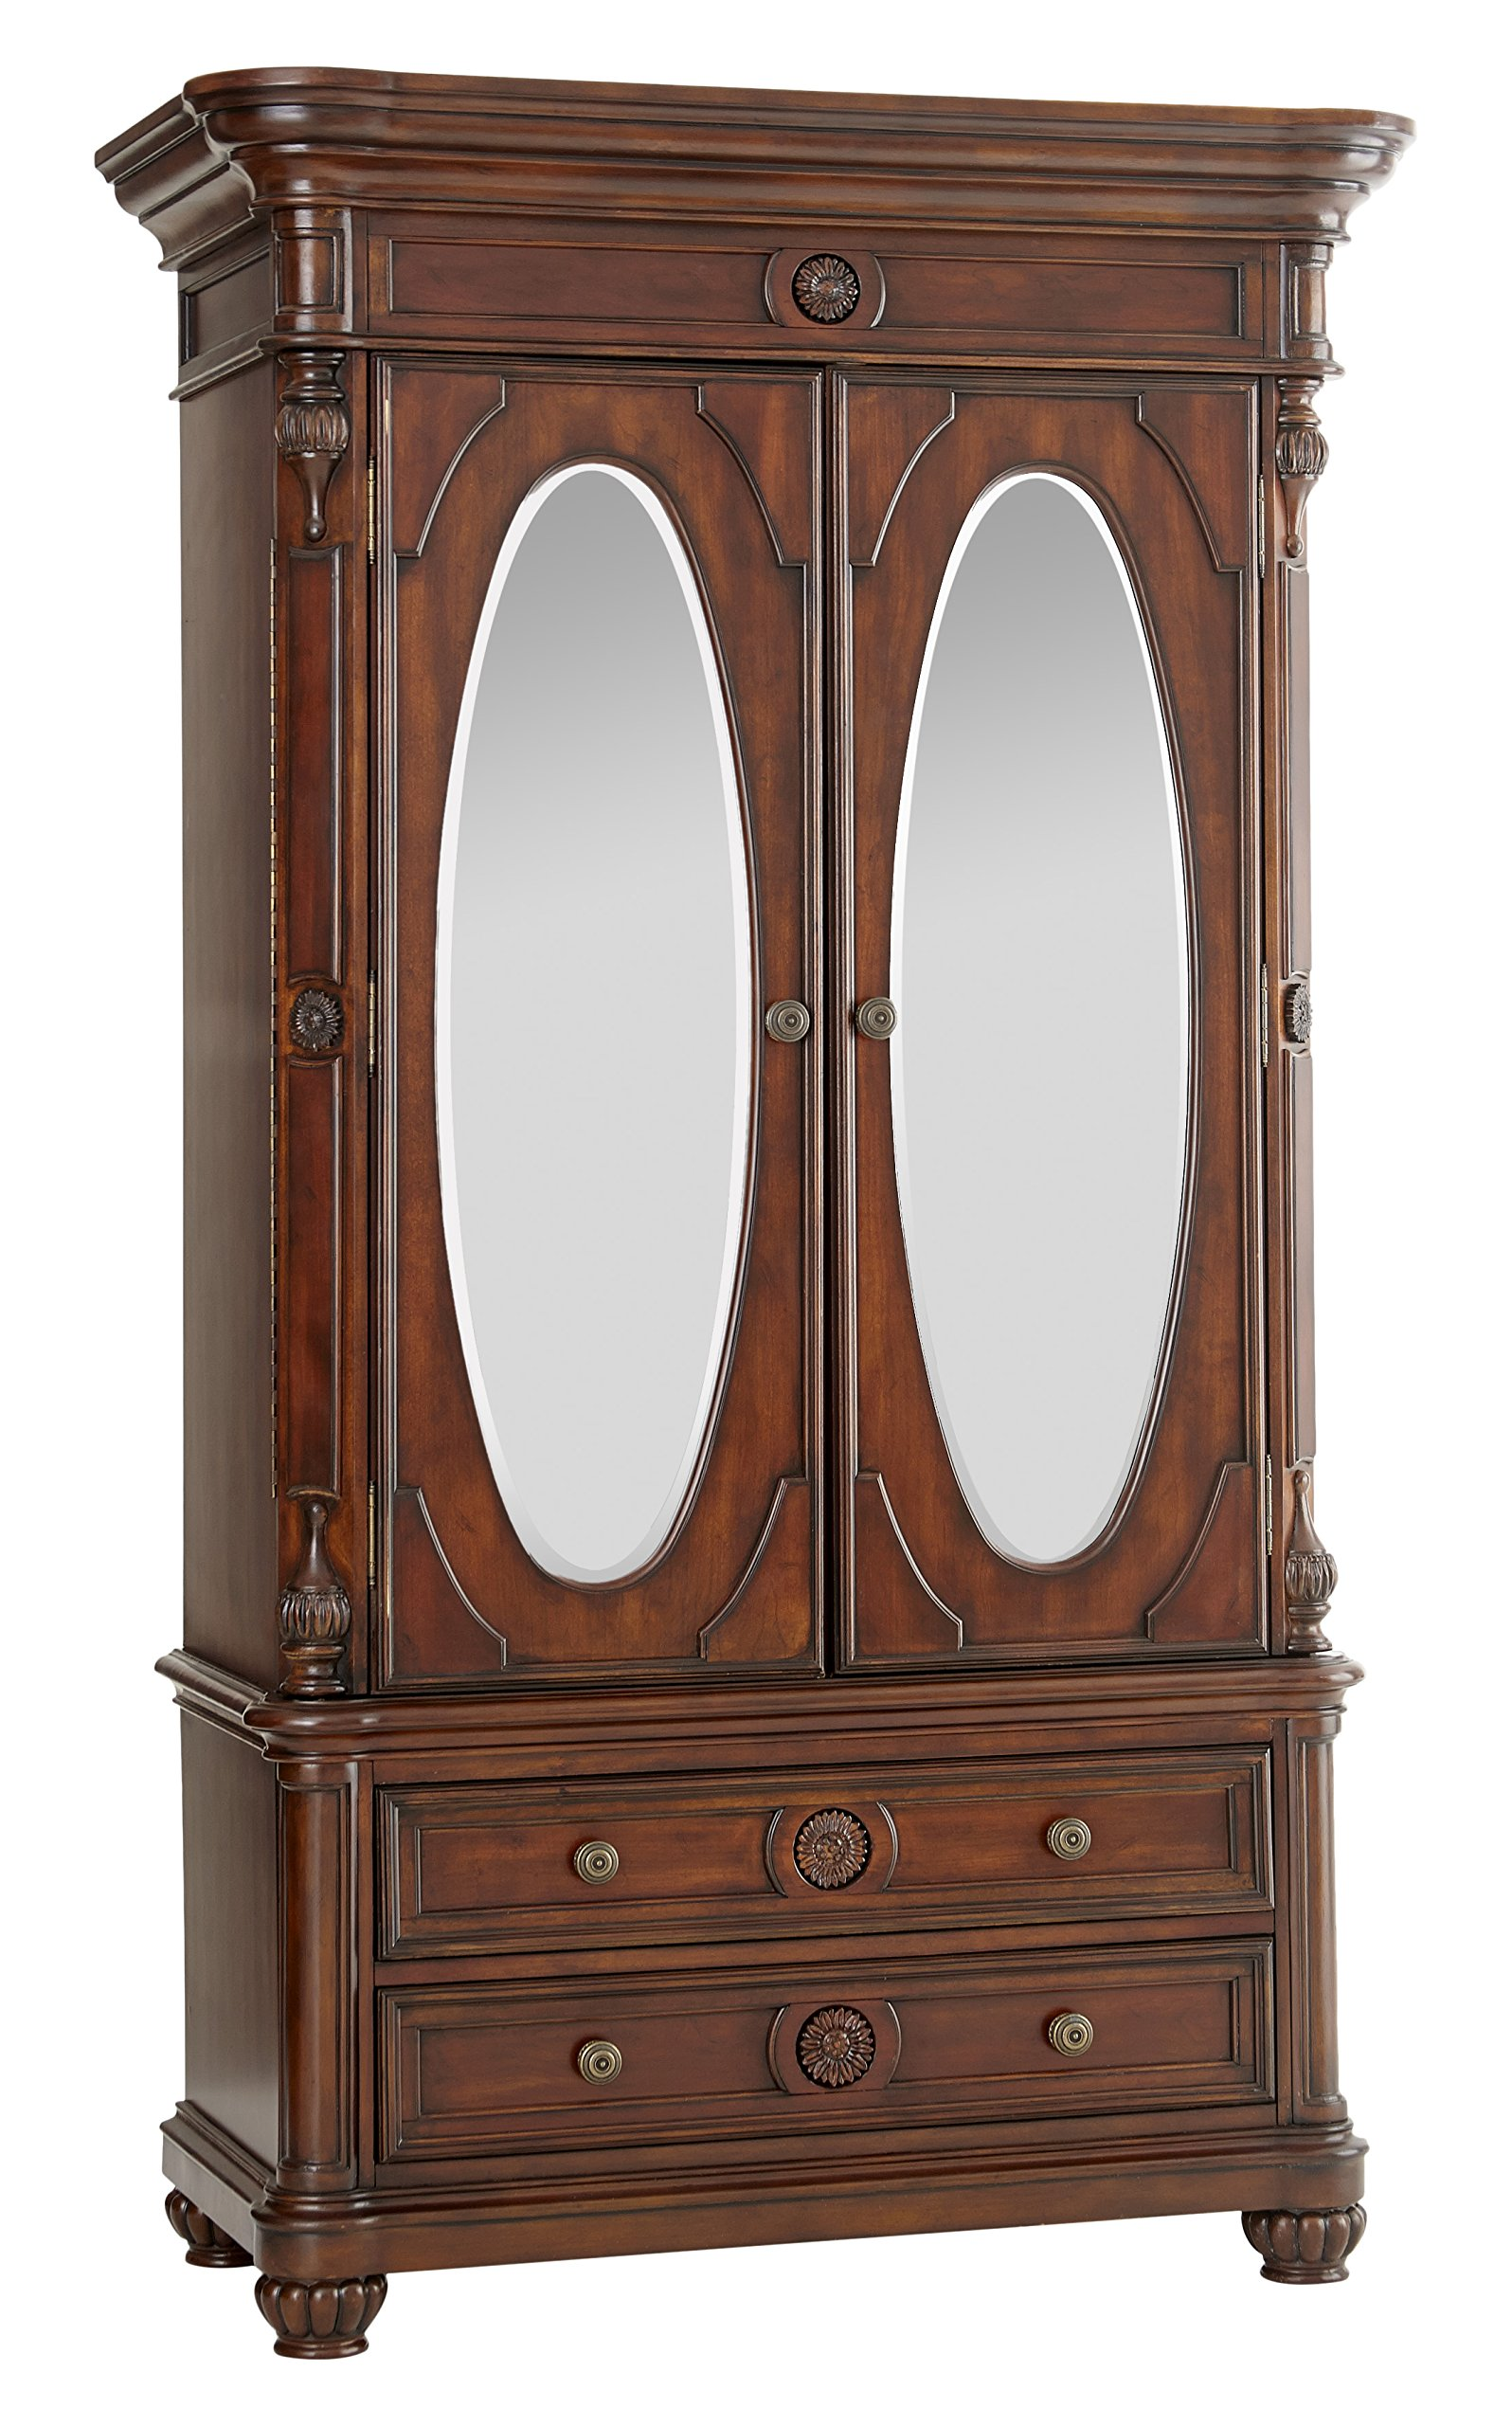 1-Drawer TV Armoire 720017 by Myco Furniture